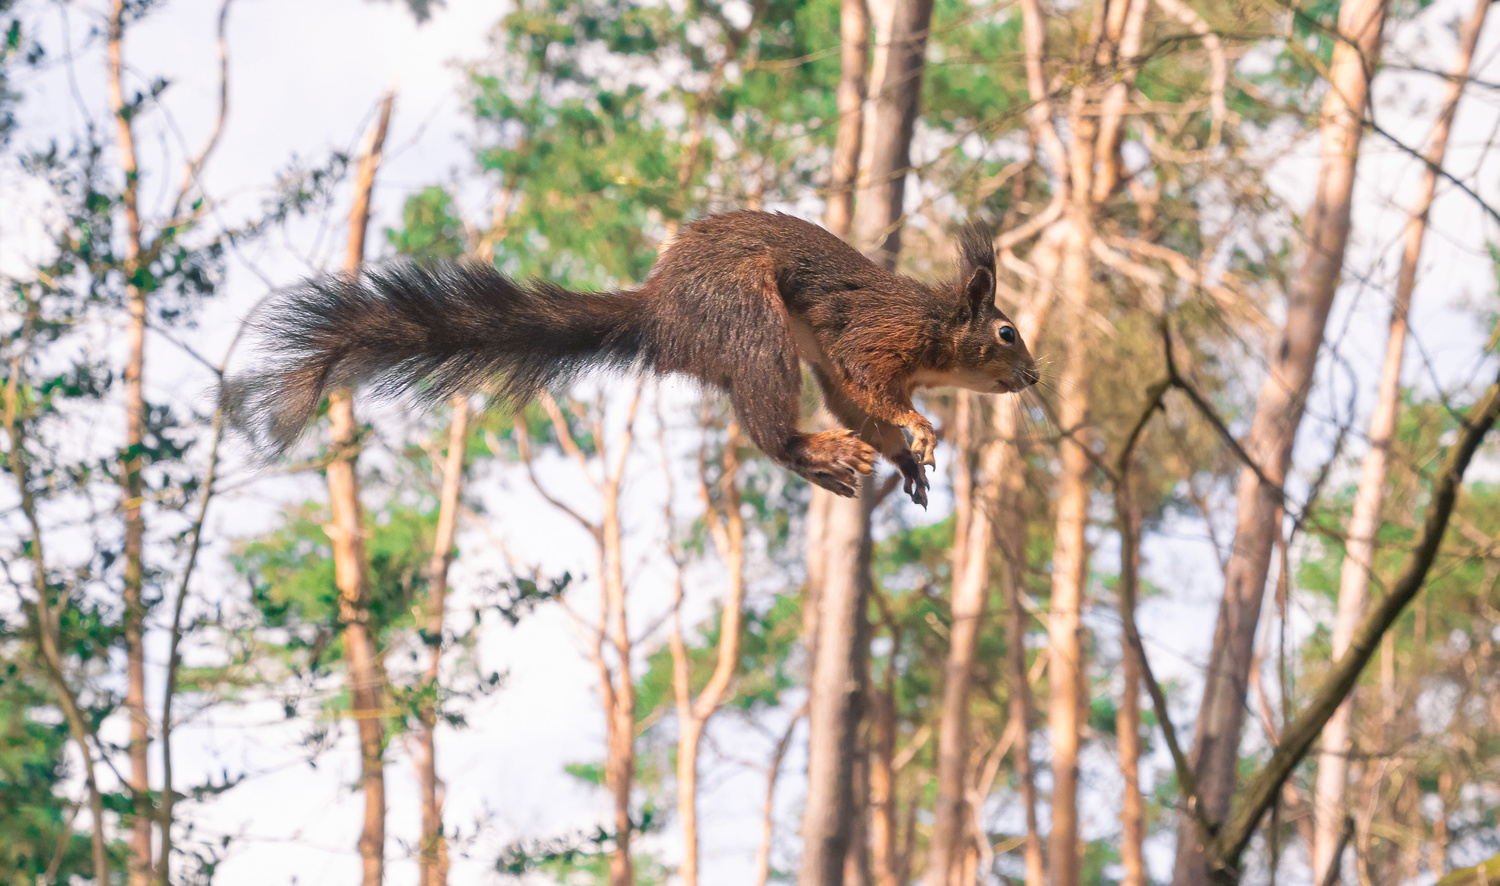 A jumping squirrel